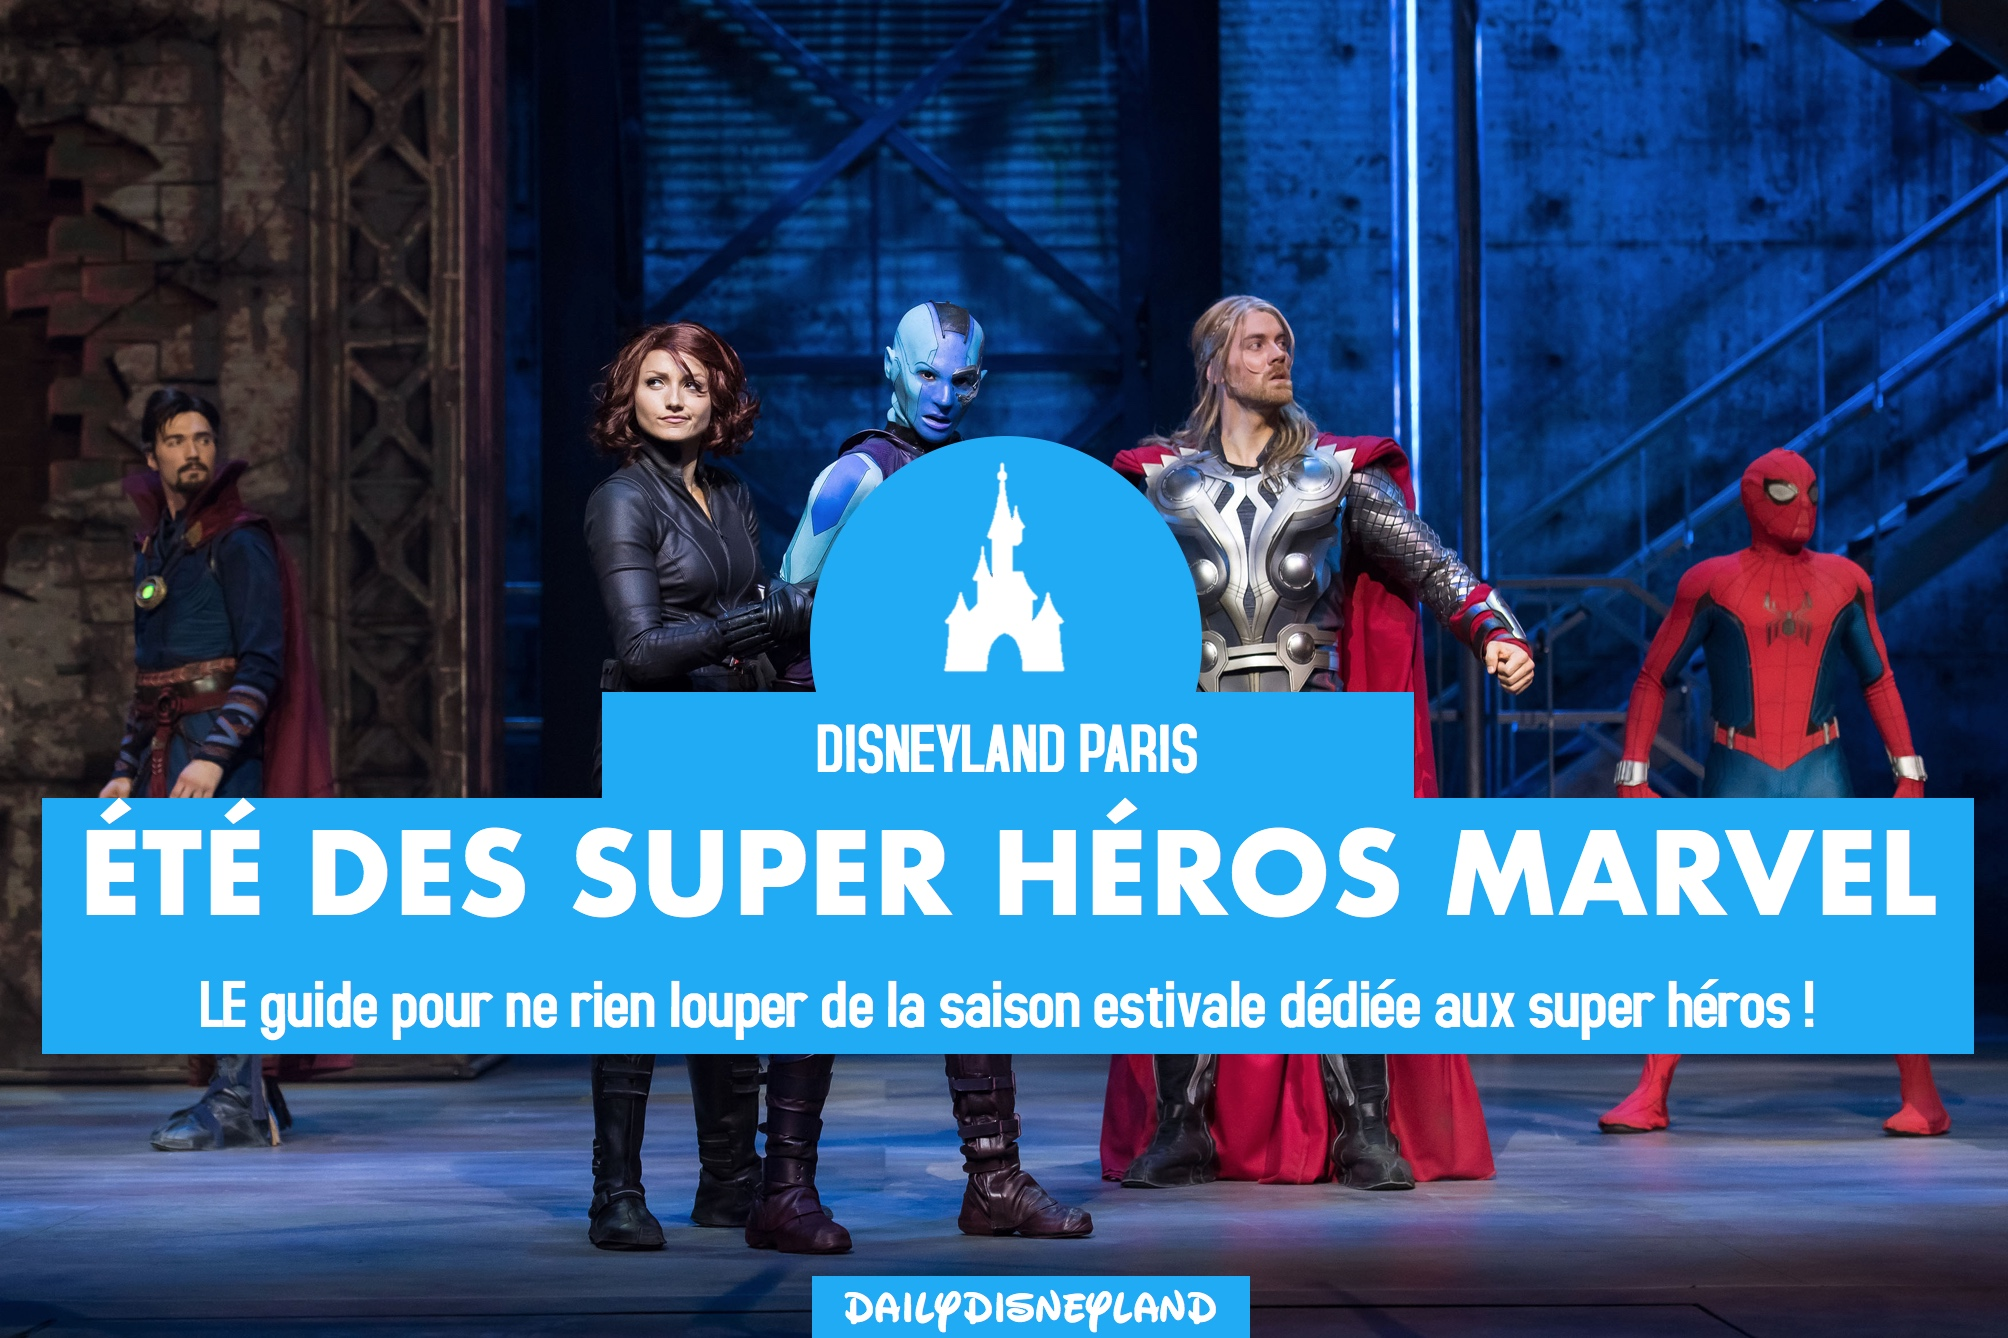 ete super heros marvel disneyland paris